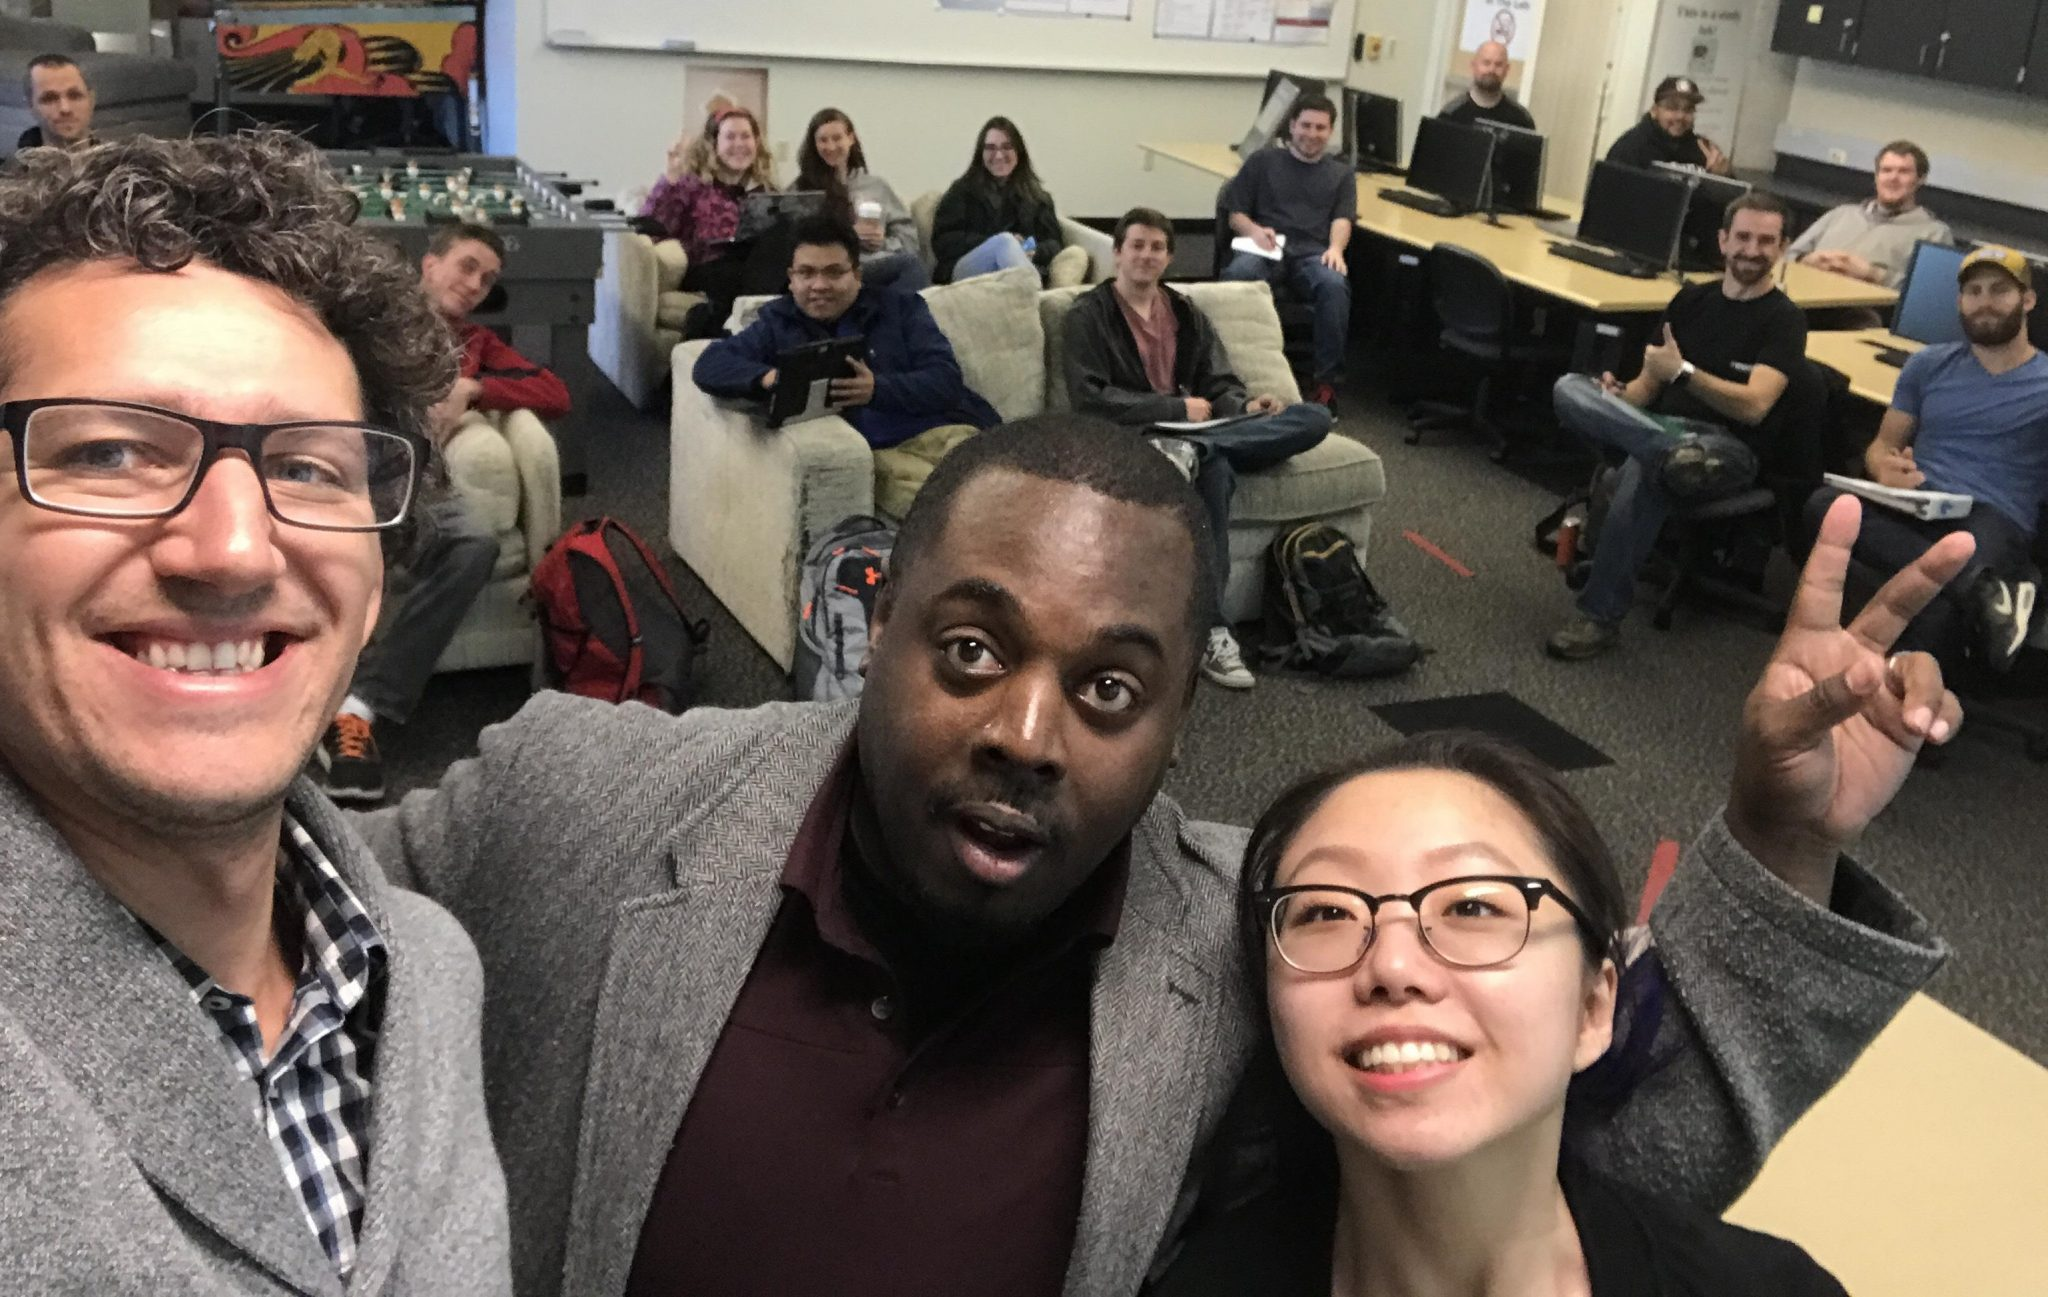 Selfie containing three presenters and thirteen visible students.